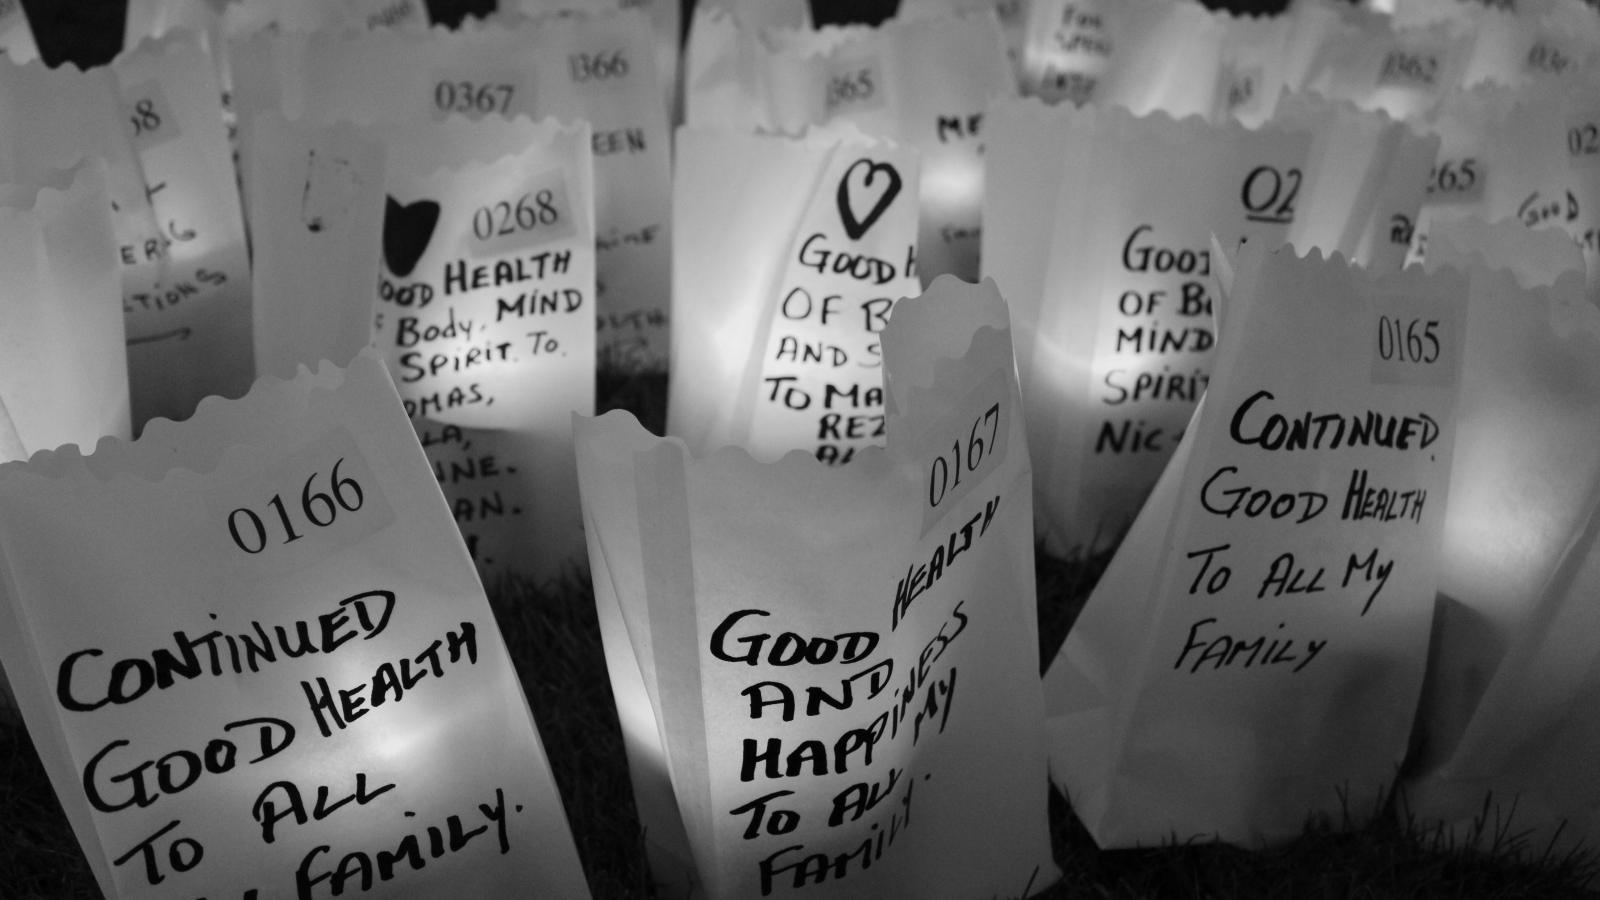 Relay For Life Candle of Hope bag with message written on it